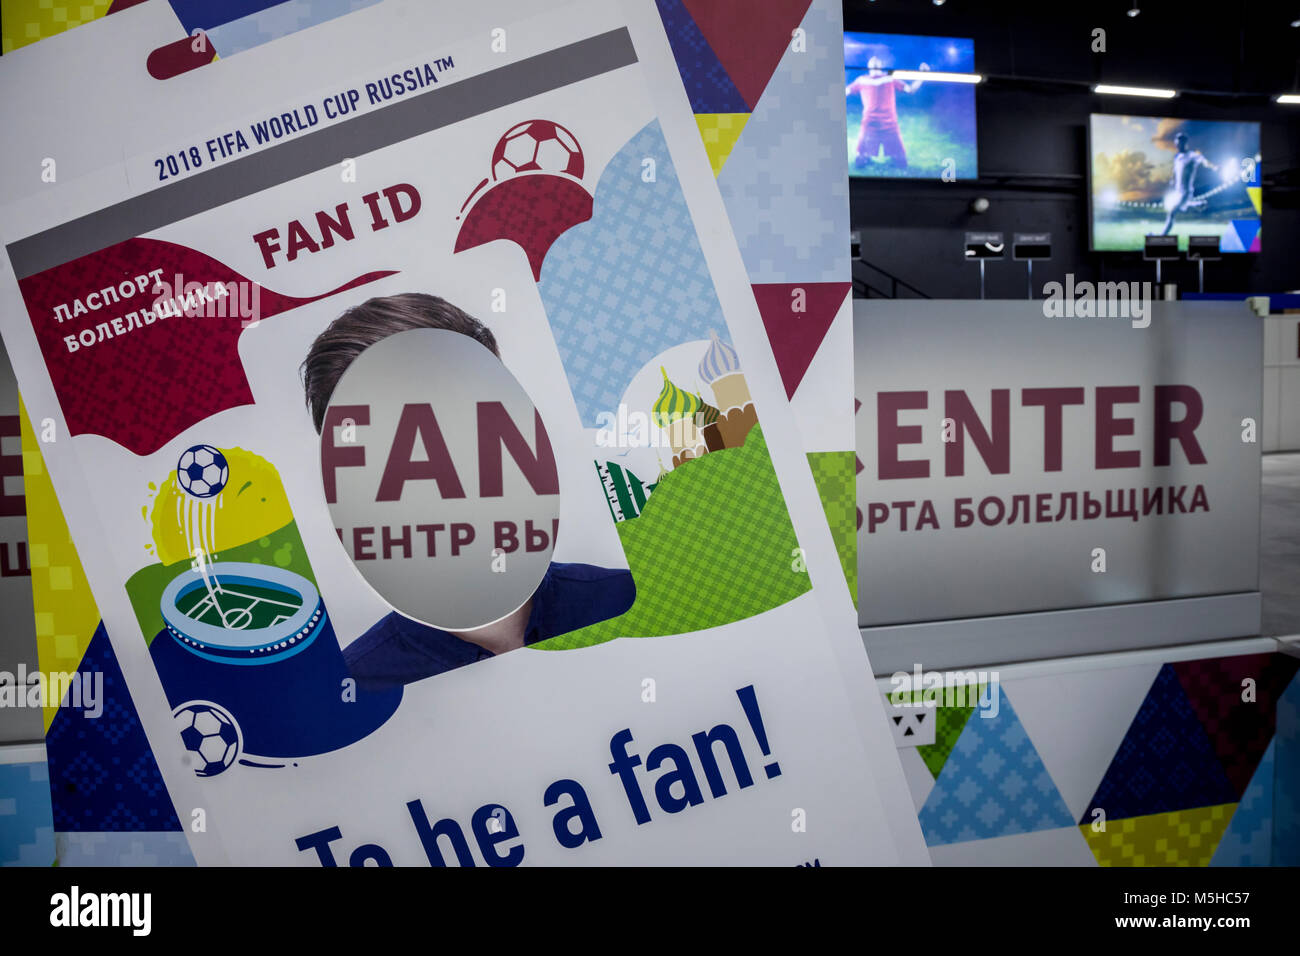 L'intérieur du ventilateur par ID Distribution Centre de la Coupe du Monde FIFA 2018 à Moscou, Russie Photo Stock